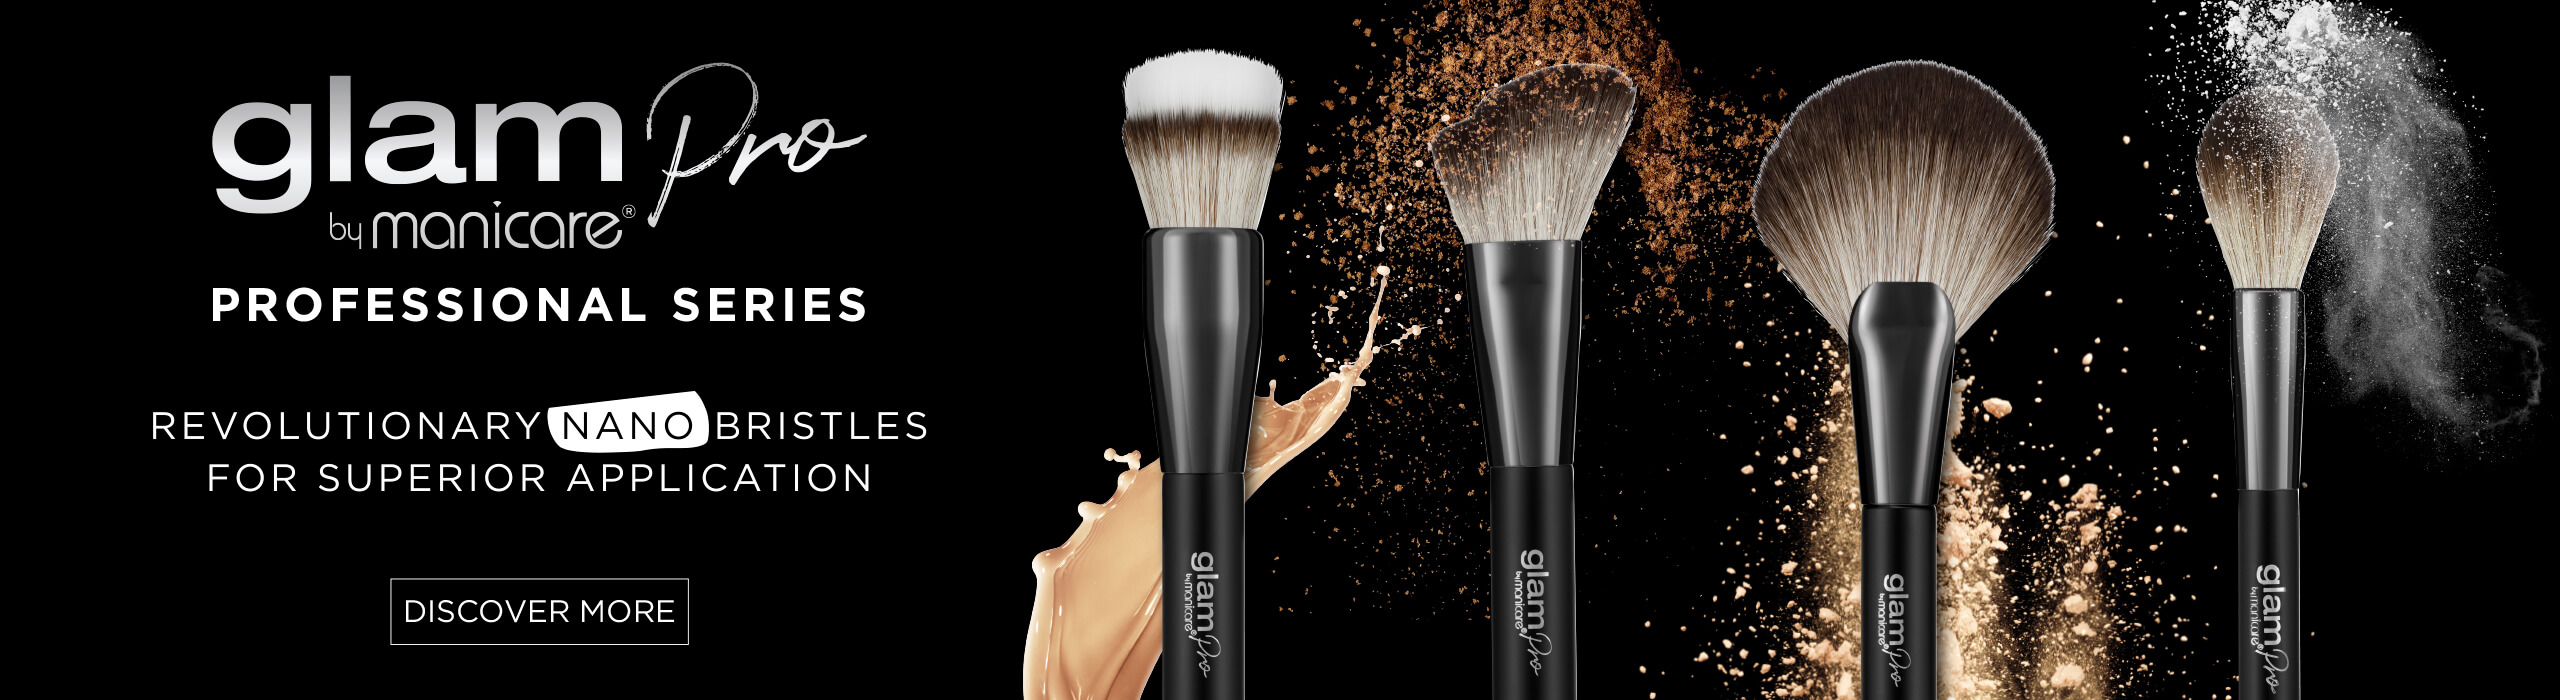 Glam Pro Makeup Brushes